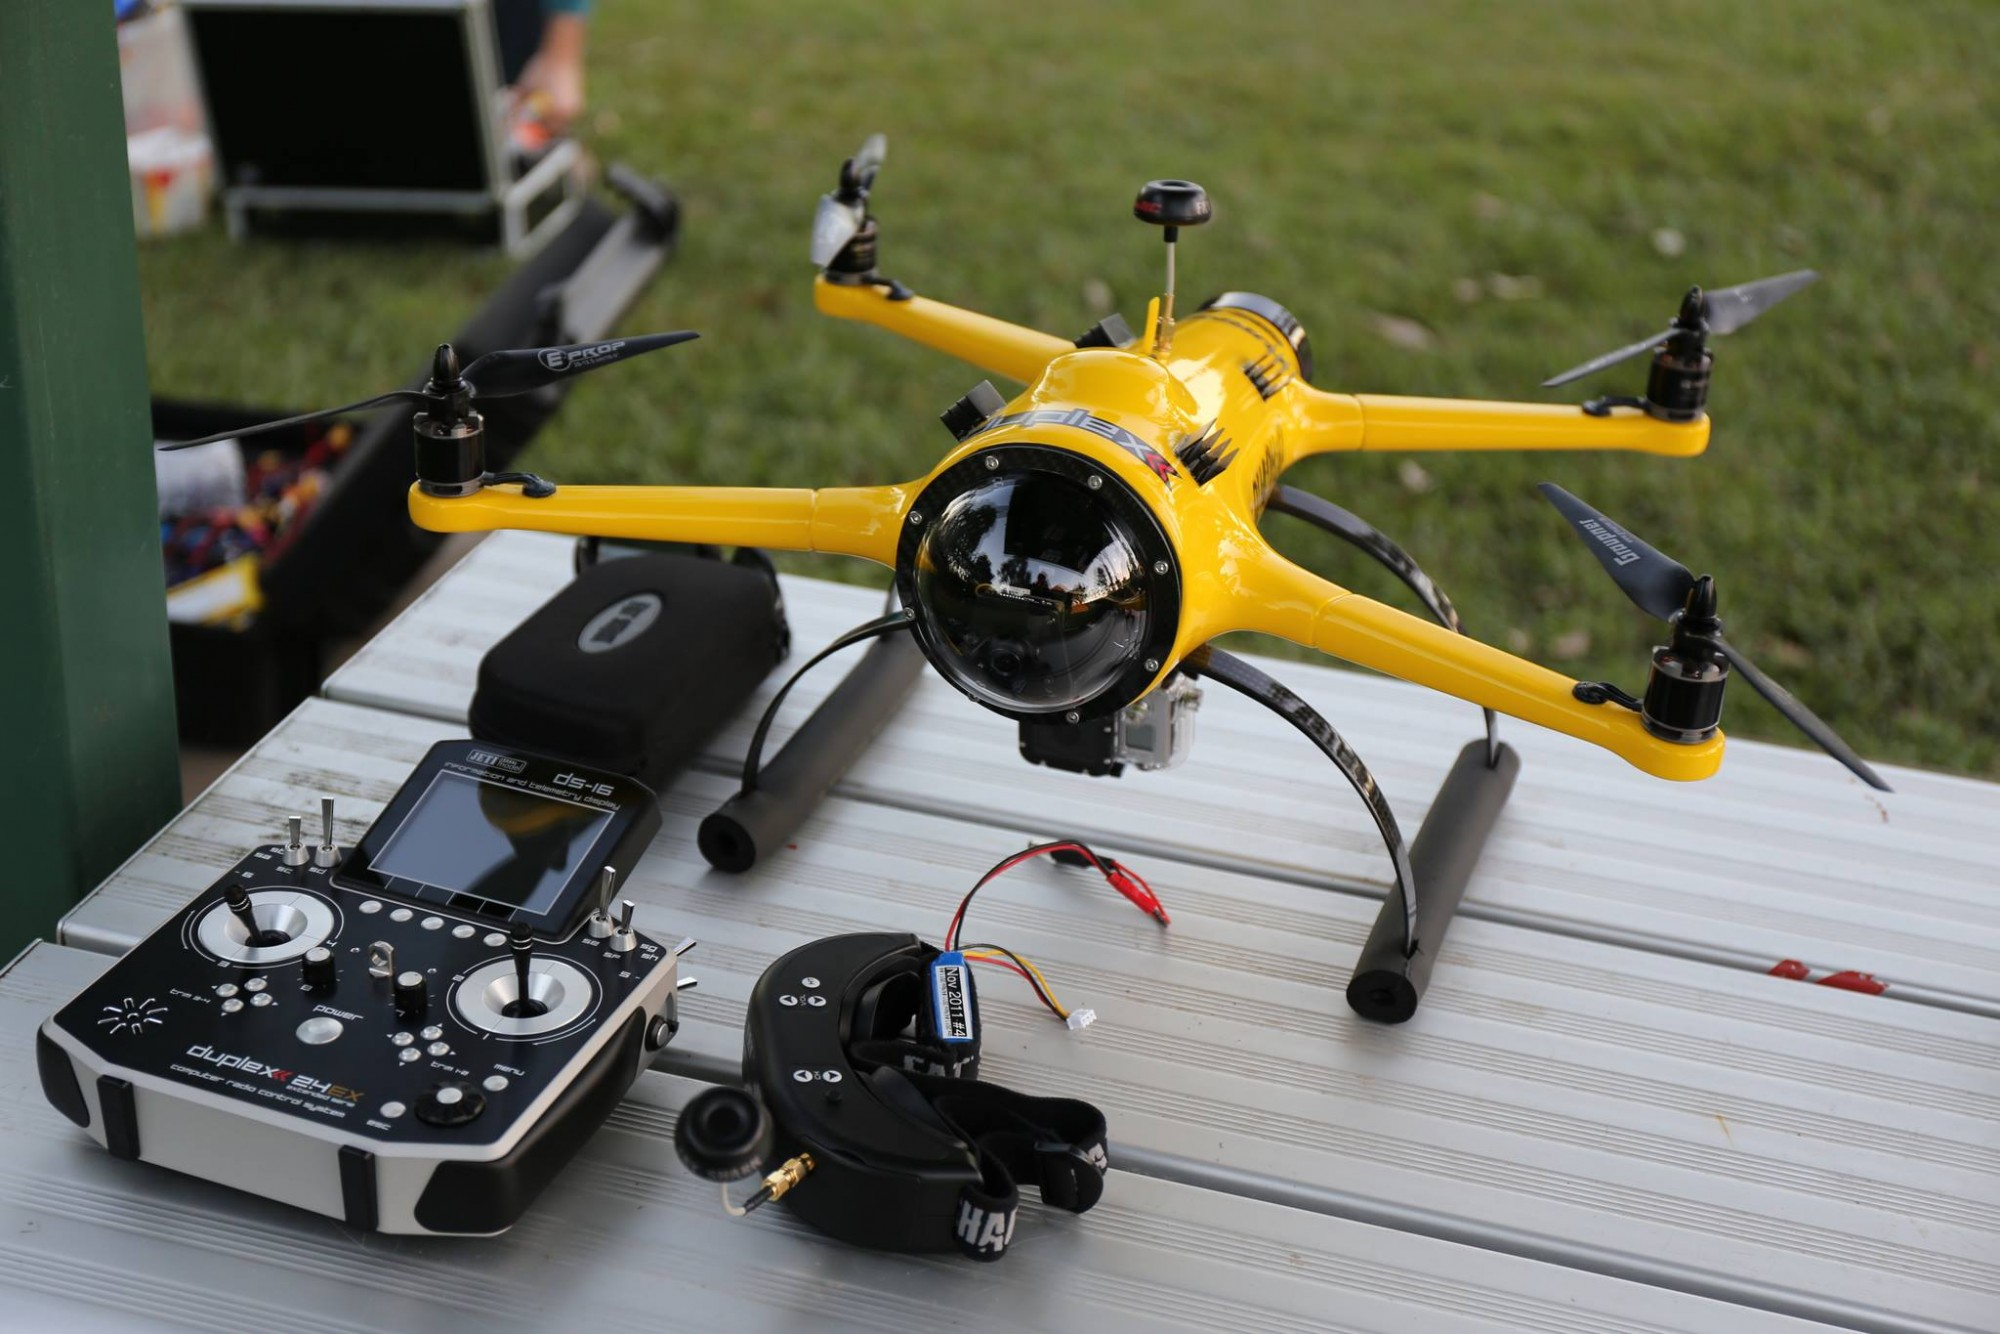 rc quad drones with 173 Multirotor Waterproof on Superior Quality Explorers 2 4ghz 4ch 6 Axis Rc Quadcopter Drone Rtf Wifi Hd Camera Fpv besides Snoopy Doghouse Drone furthermore Rc Radio Remote Control Yama 15 Scale Petrol Rc Buggy 24ghz Pro 30cc Carbon Version 23554 P also Traxxas Latrax Alias Quad Rotor Drone Ready To Fly Helicopter Met Lipo Trx6608 P 3842 likewise DJI Spark Mini Selfie Drone With Remote Controller RTF White 383248.